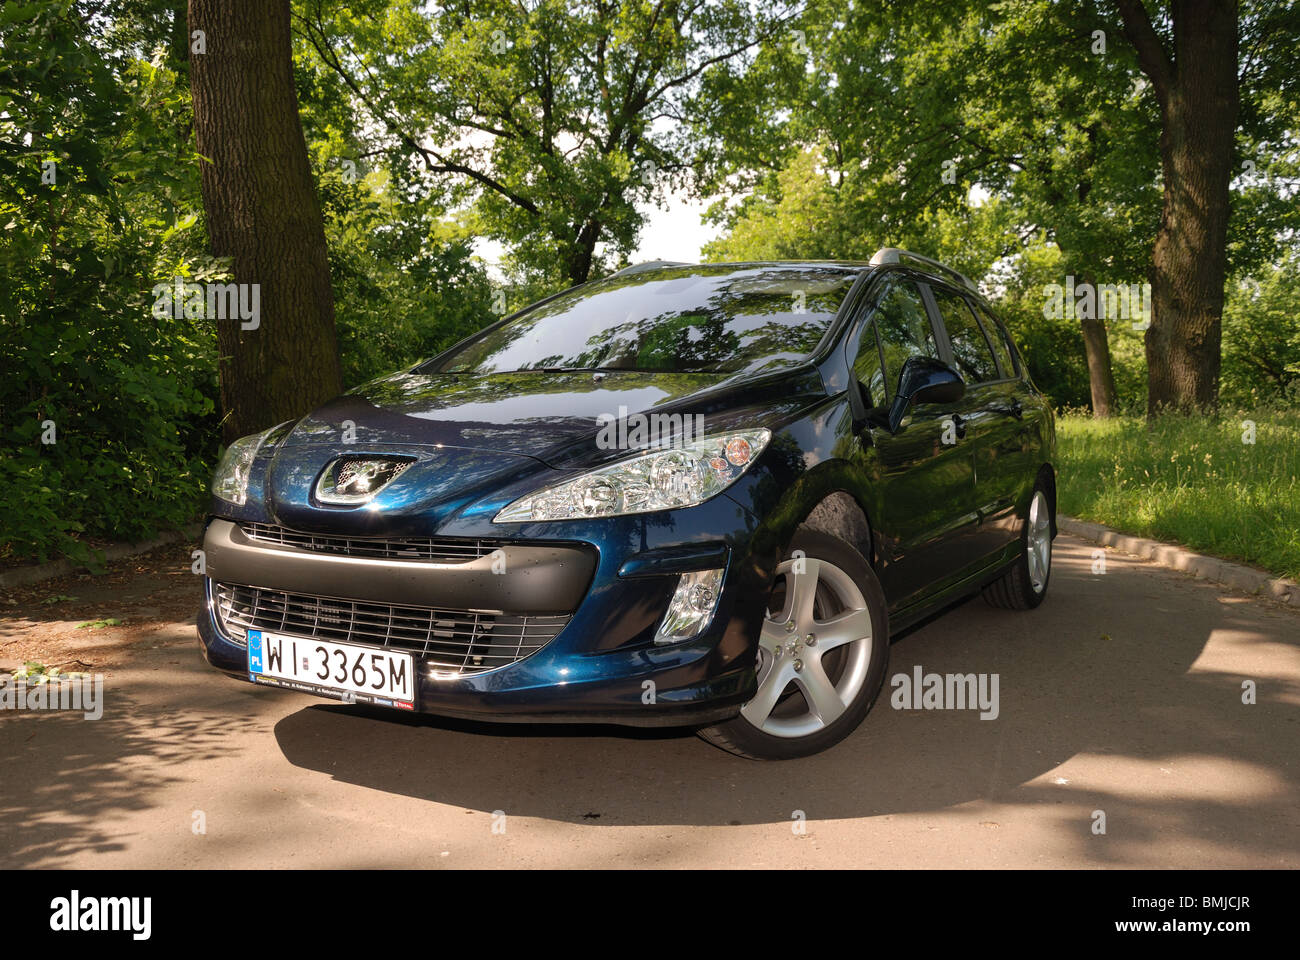 peugeot 308 sw 1 6 hdi my 2010 dark blue metallic five doors stock photo 29908559 alamy. Black Bedroom Furniture Sets. Home Design Ideas